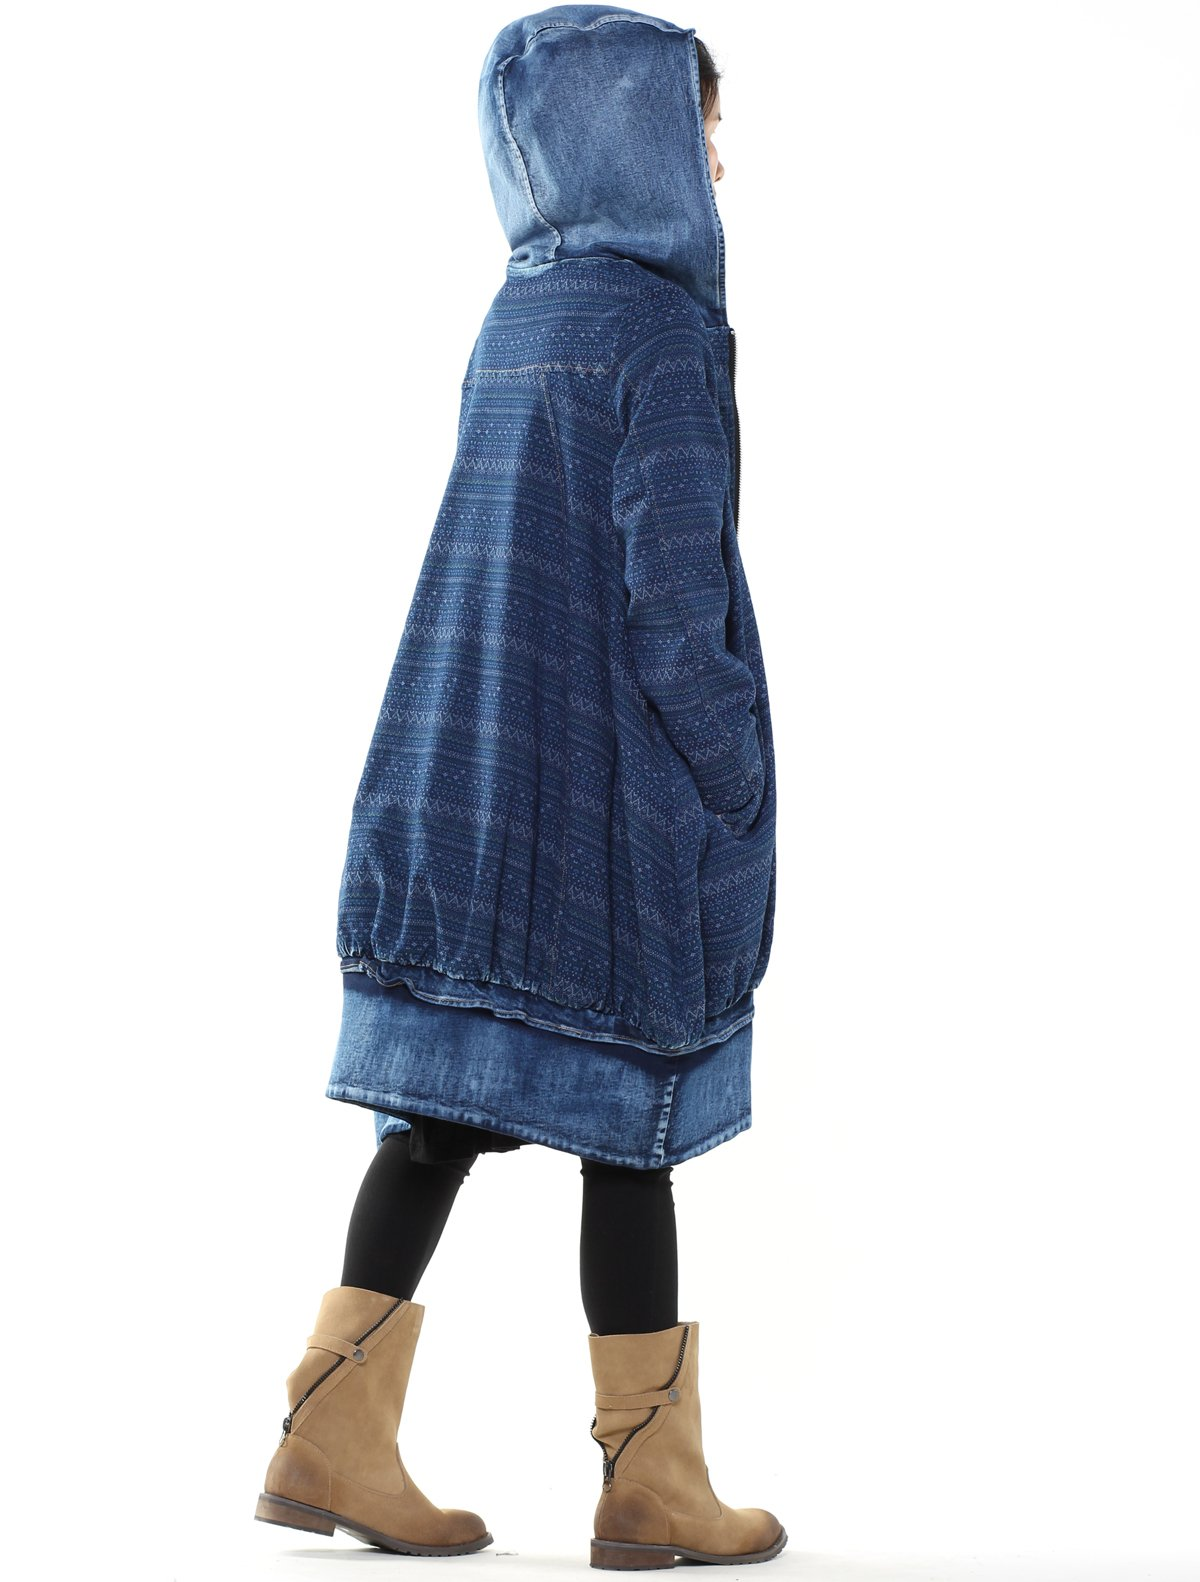 Mordenmiss Women's New Loose Fit Hoodie Zipper Up Denim Trench Coat With Pockets, Style 1-blue, Large by Mordenmiss (Image #3)